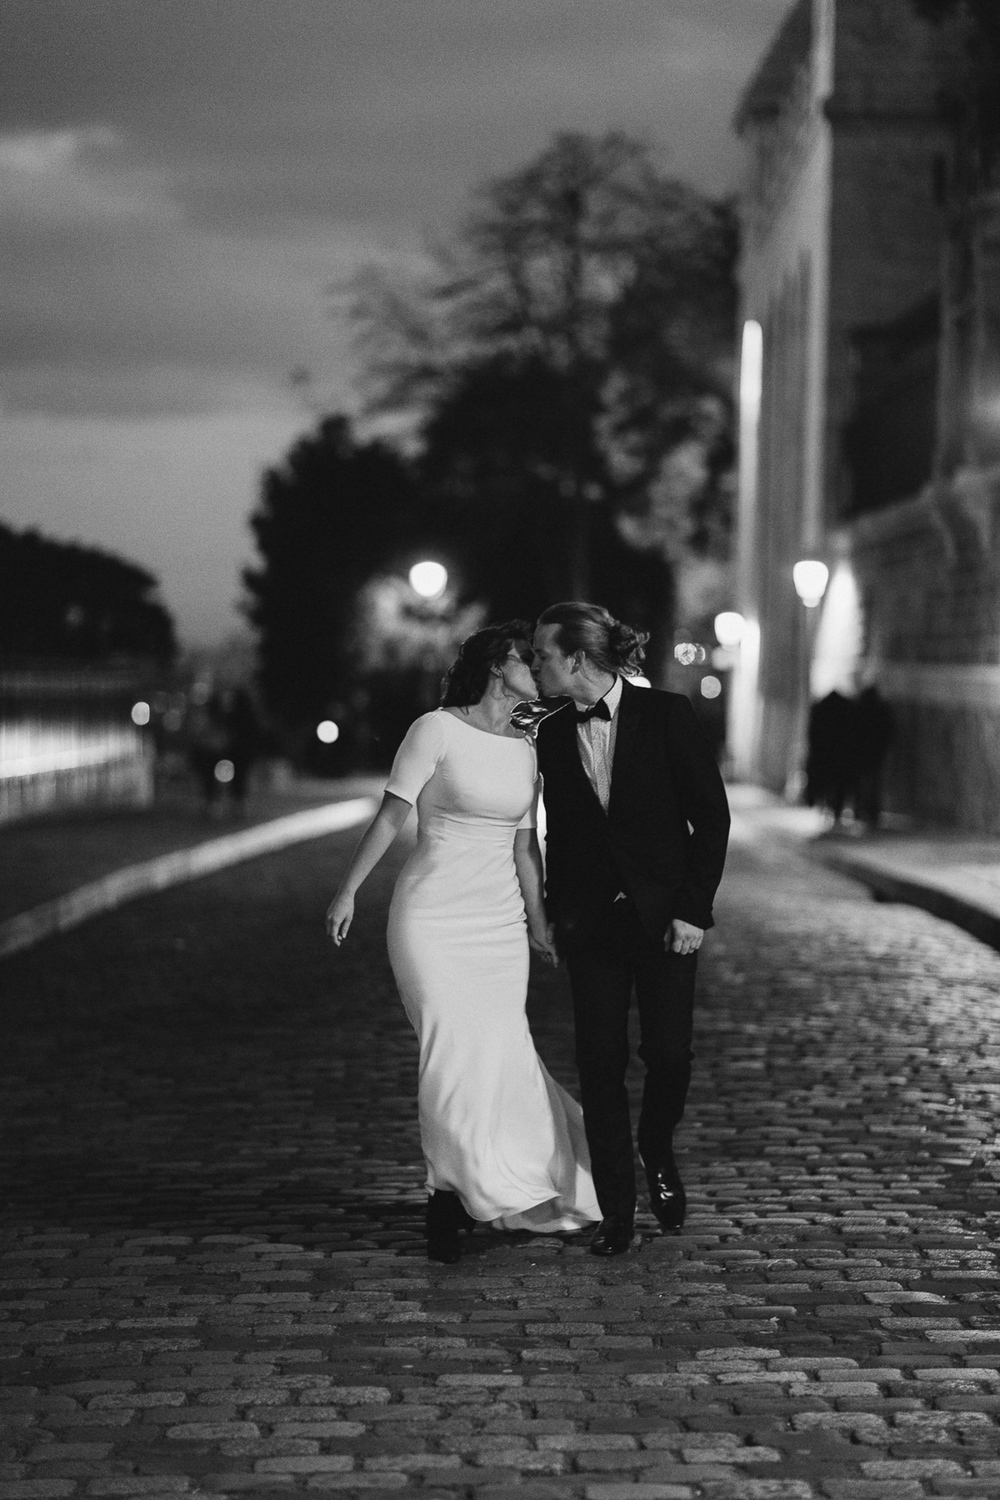 Paris Wedding Photographer Someplace Wild-187.jpg